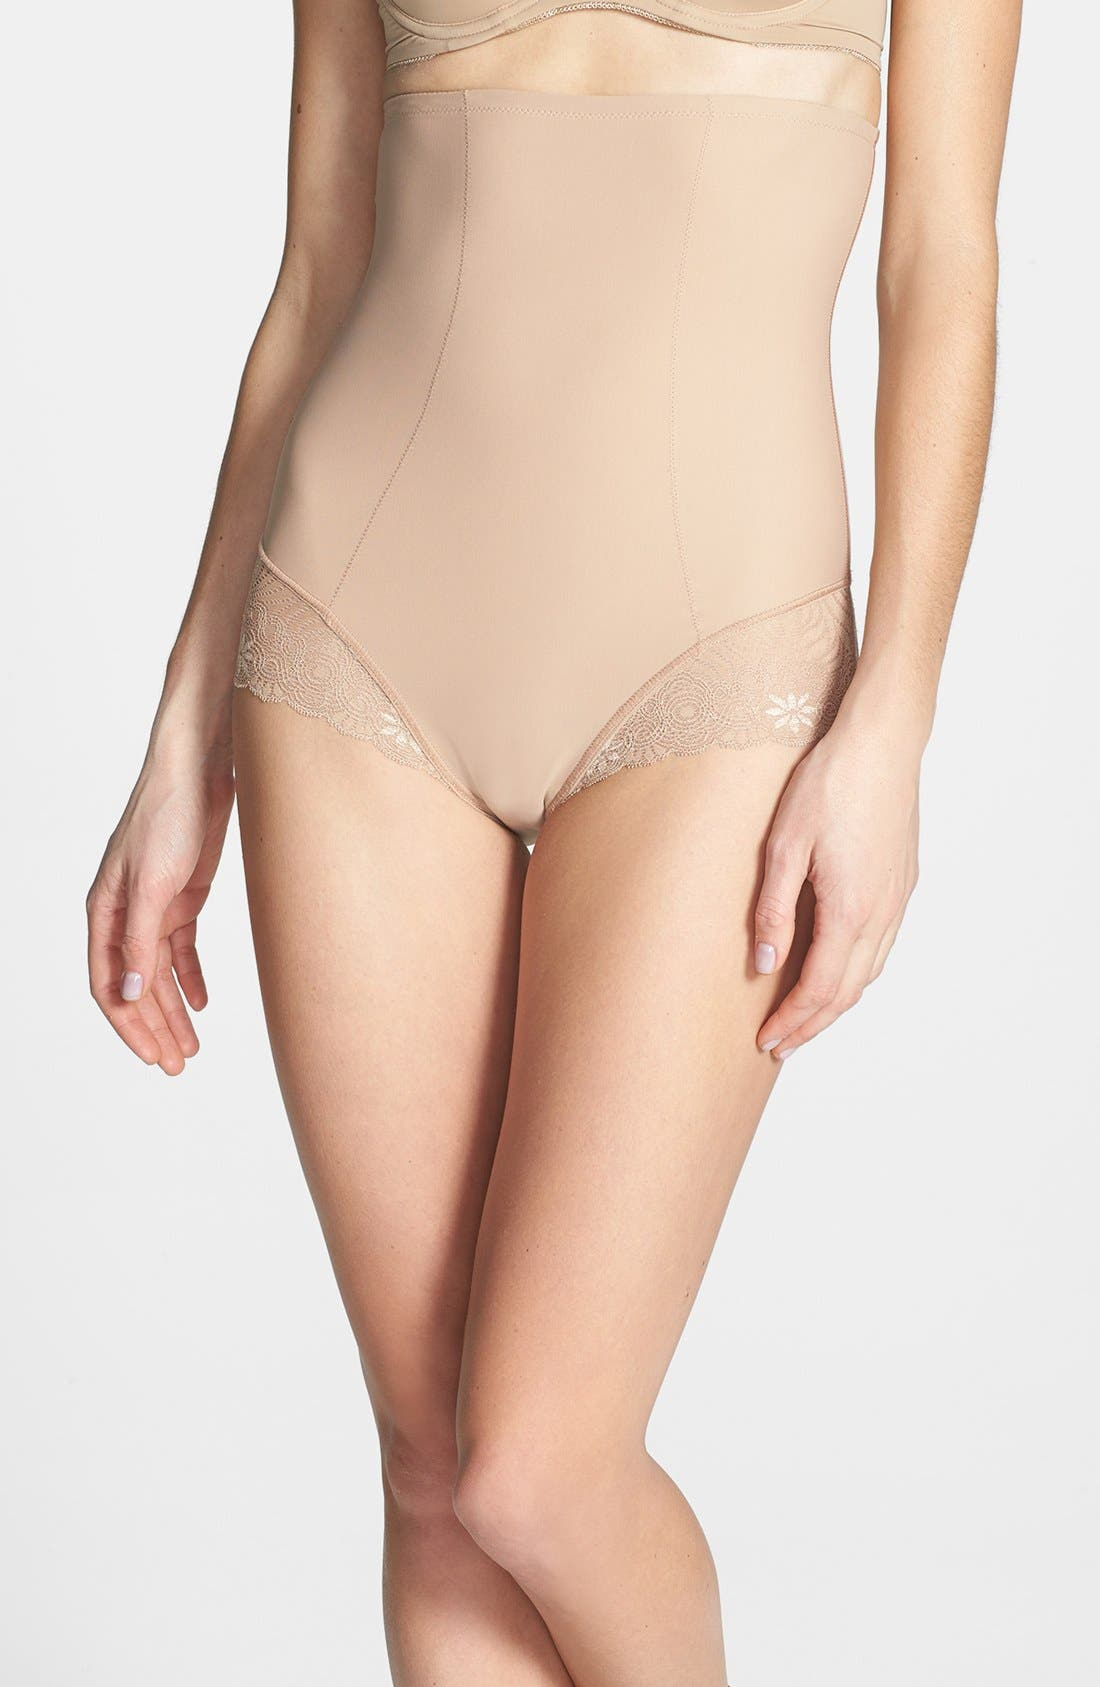 'Top Model' High Waist Shaping Briefs,                             Main thumbnail 1, color,                             Nude